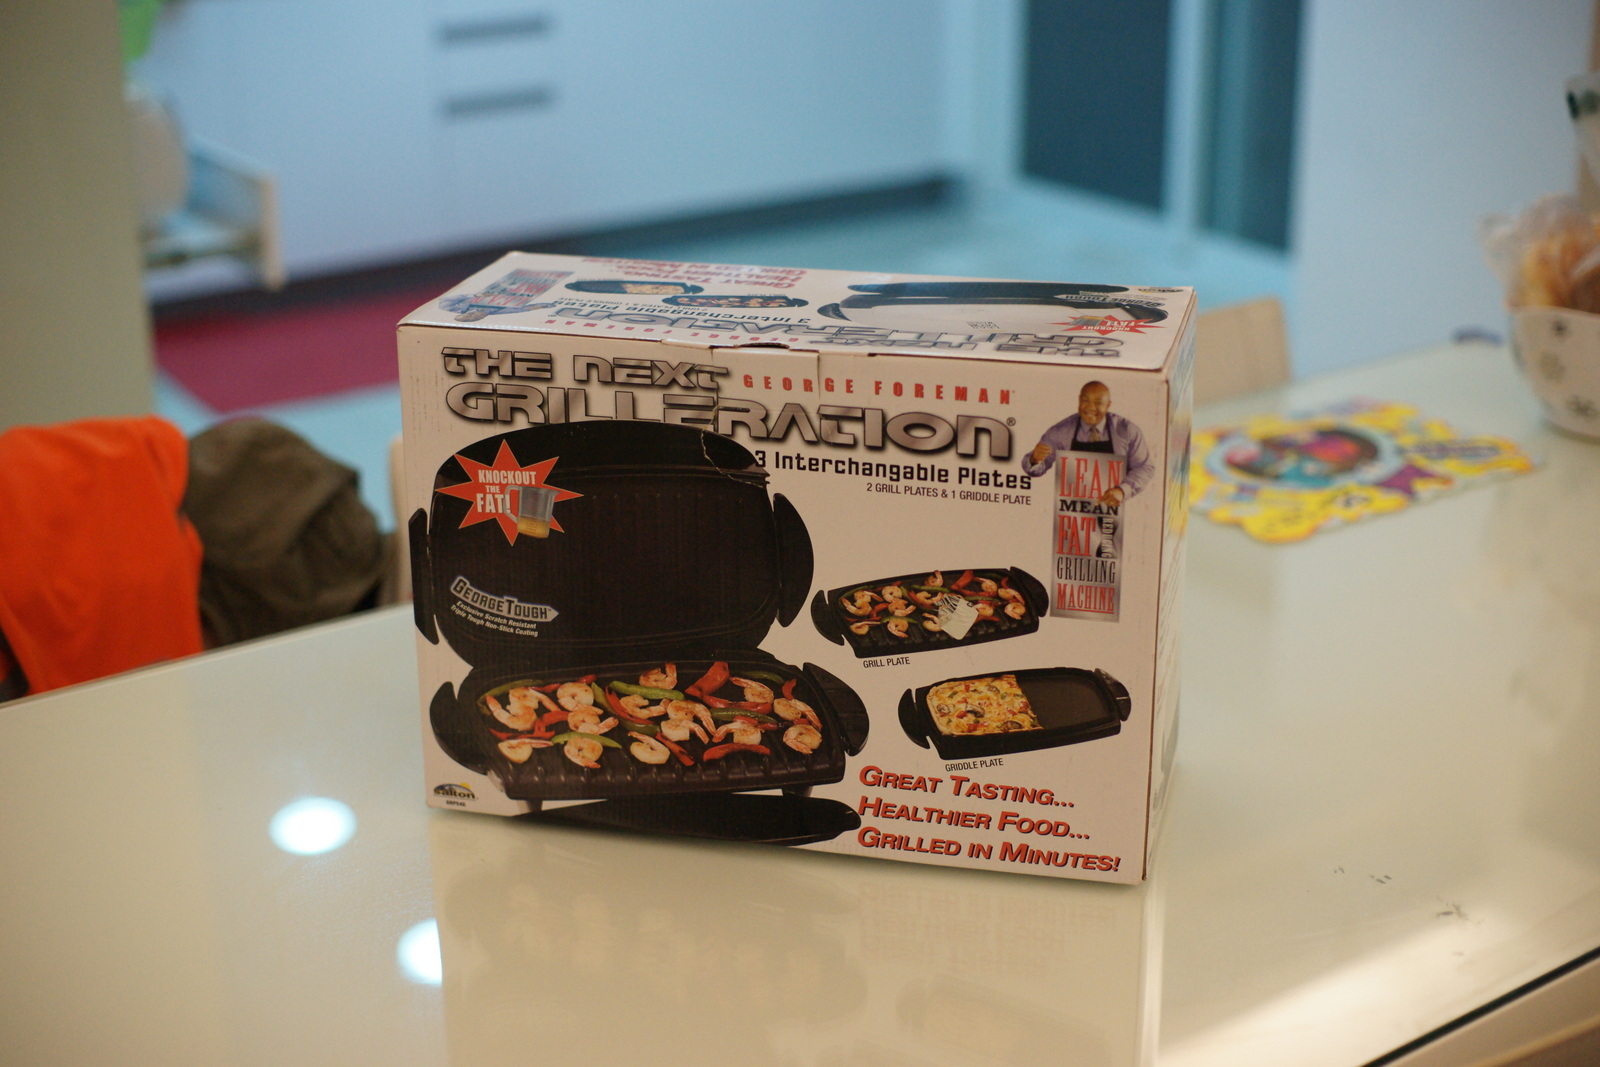 George Foreman Grill電烤爐